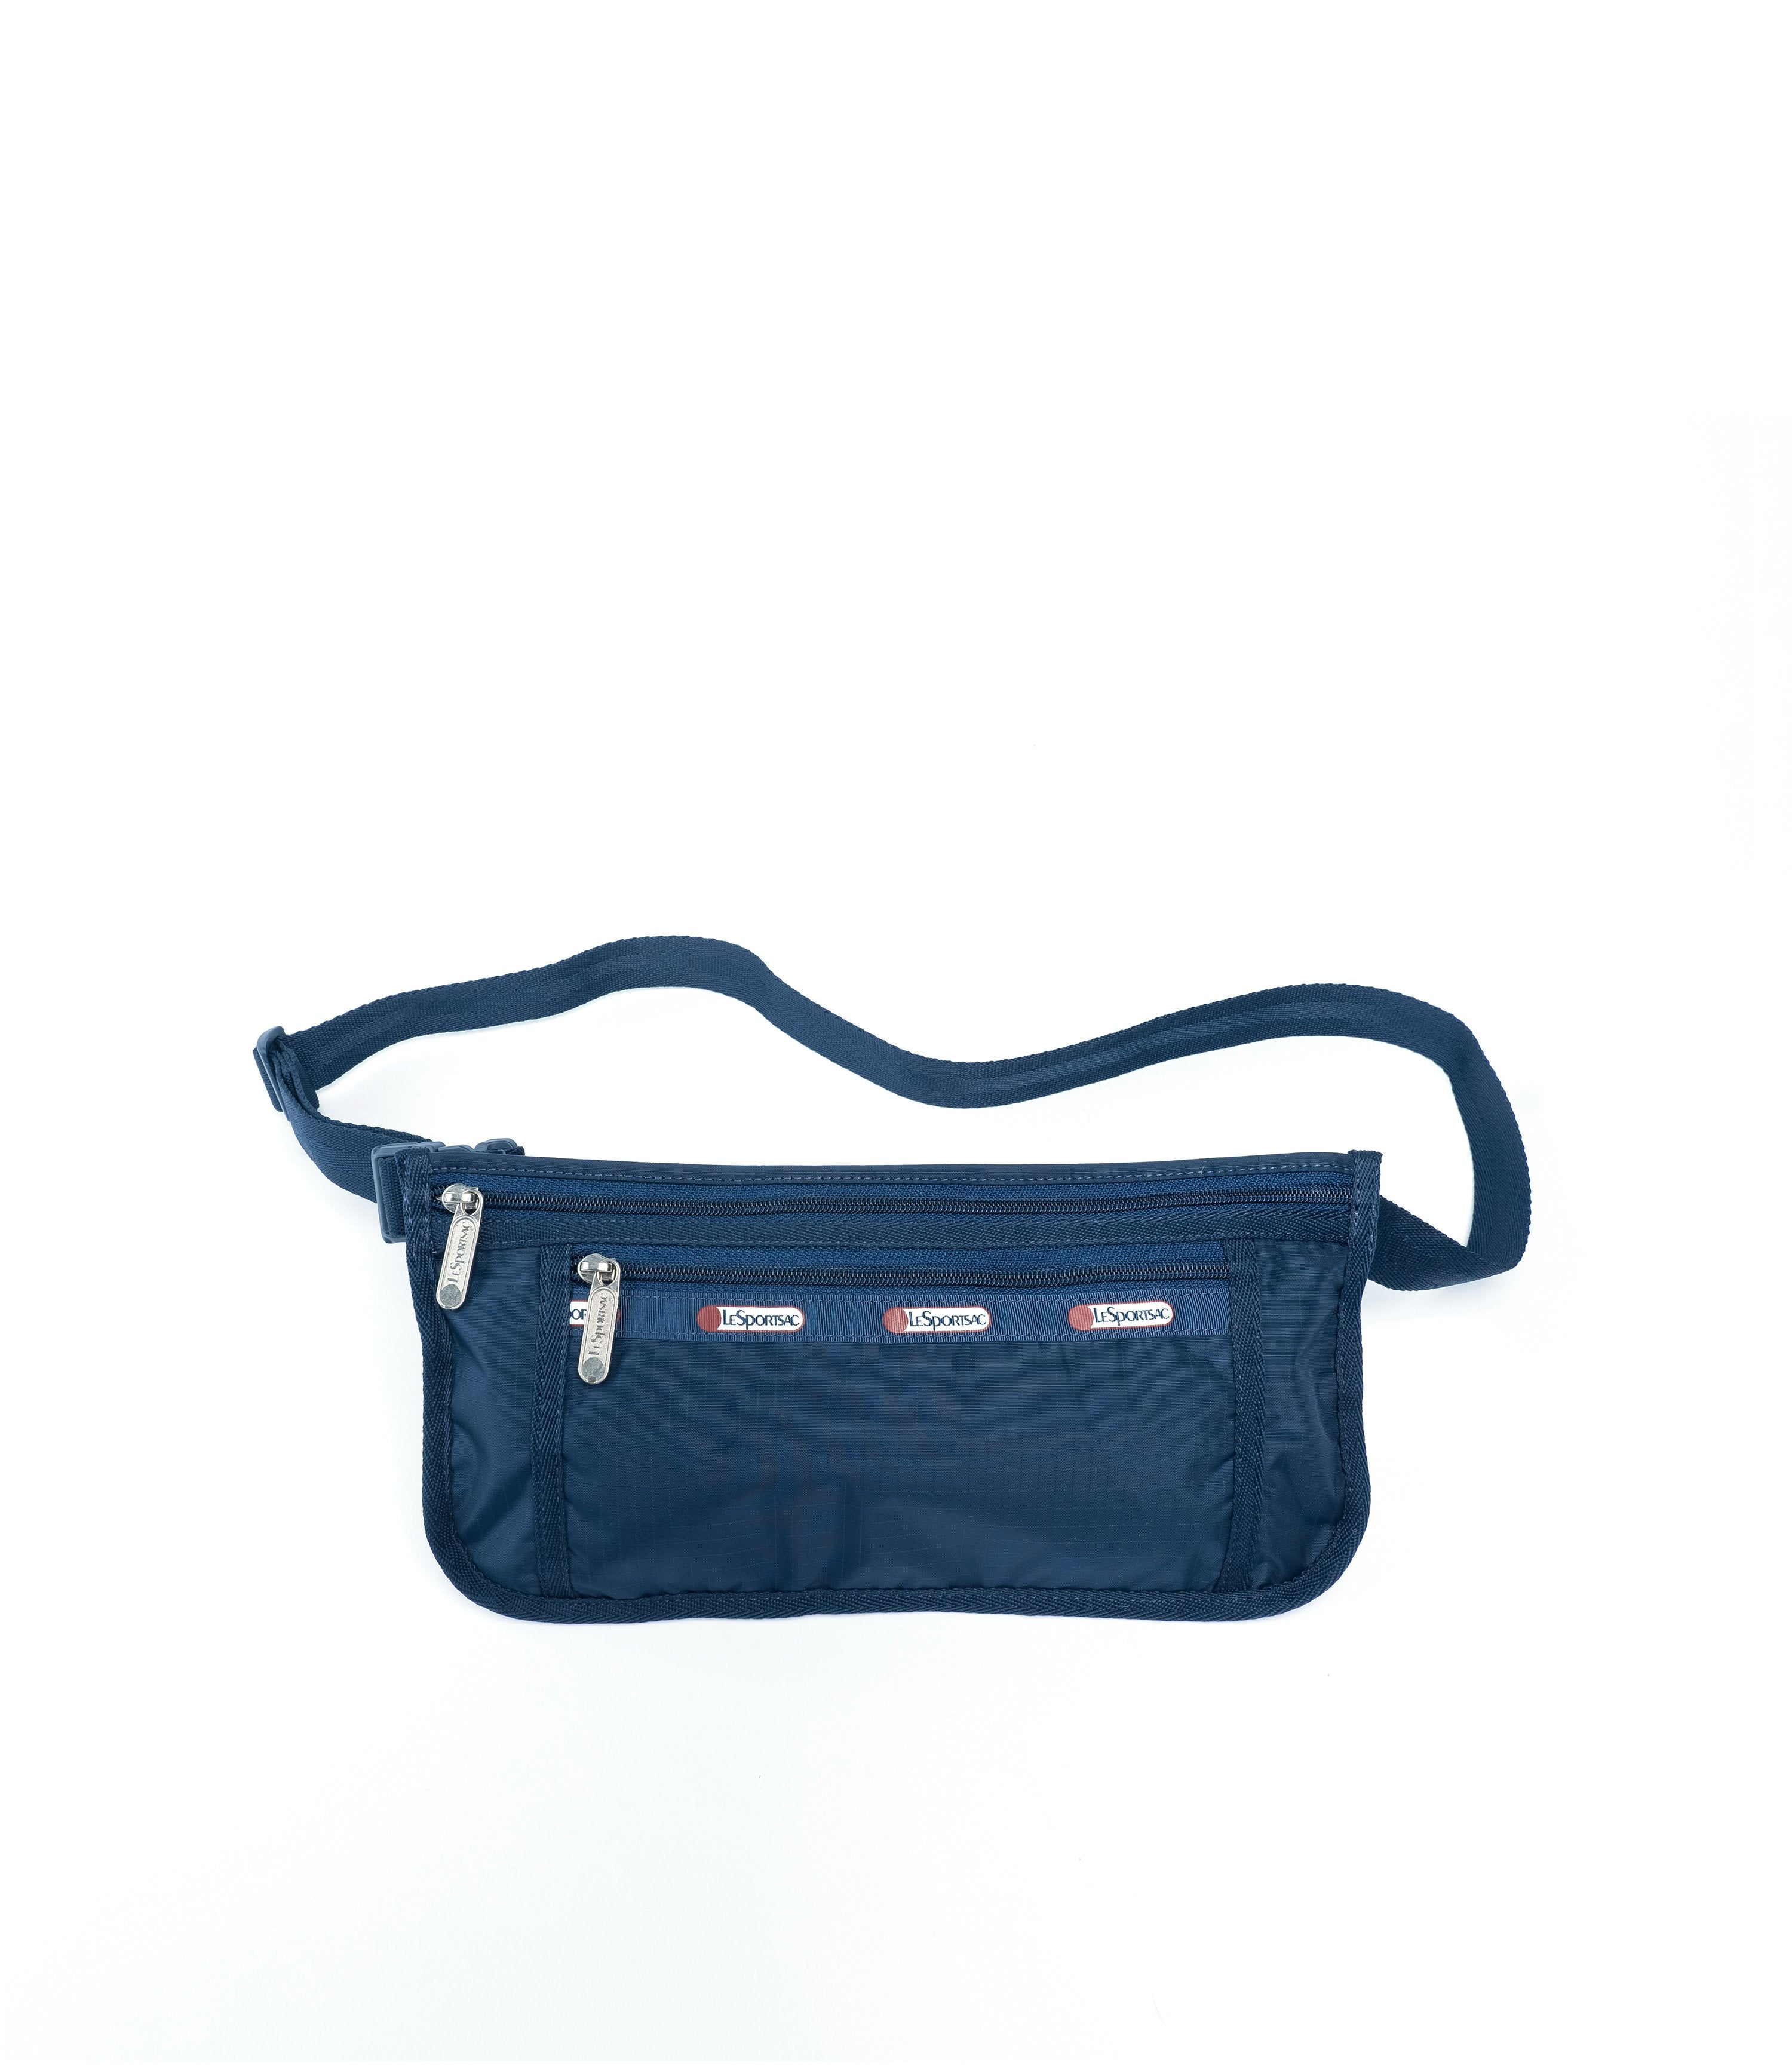 LeSportsac - Travel Belt - Accessories - Heritage Cobalt